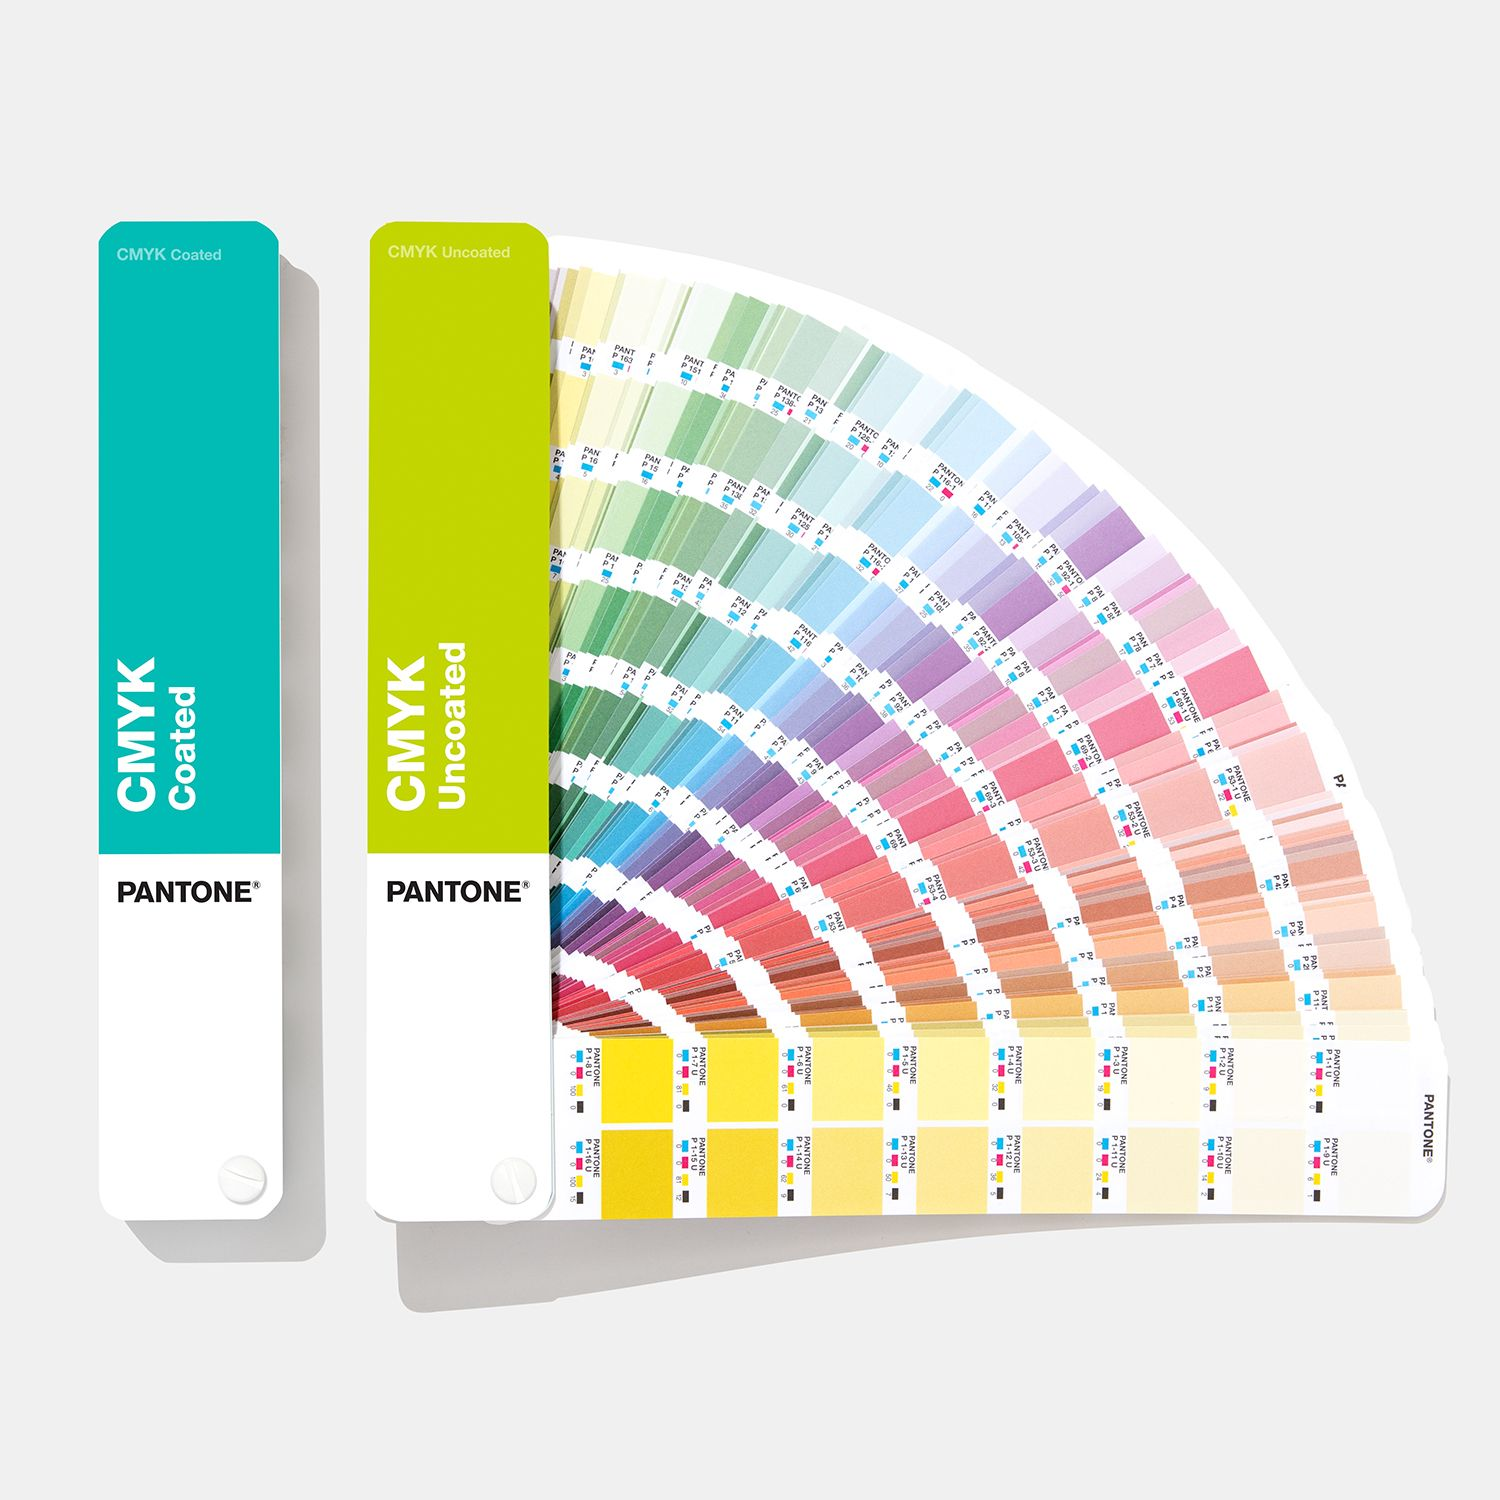 pantone cmyk guide coated uncoated view 1 in 2020 color cool grey 1c rgb to pms